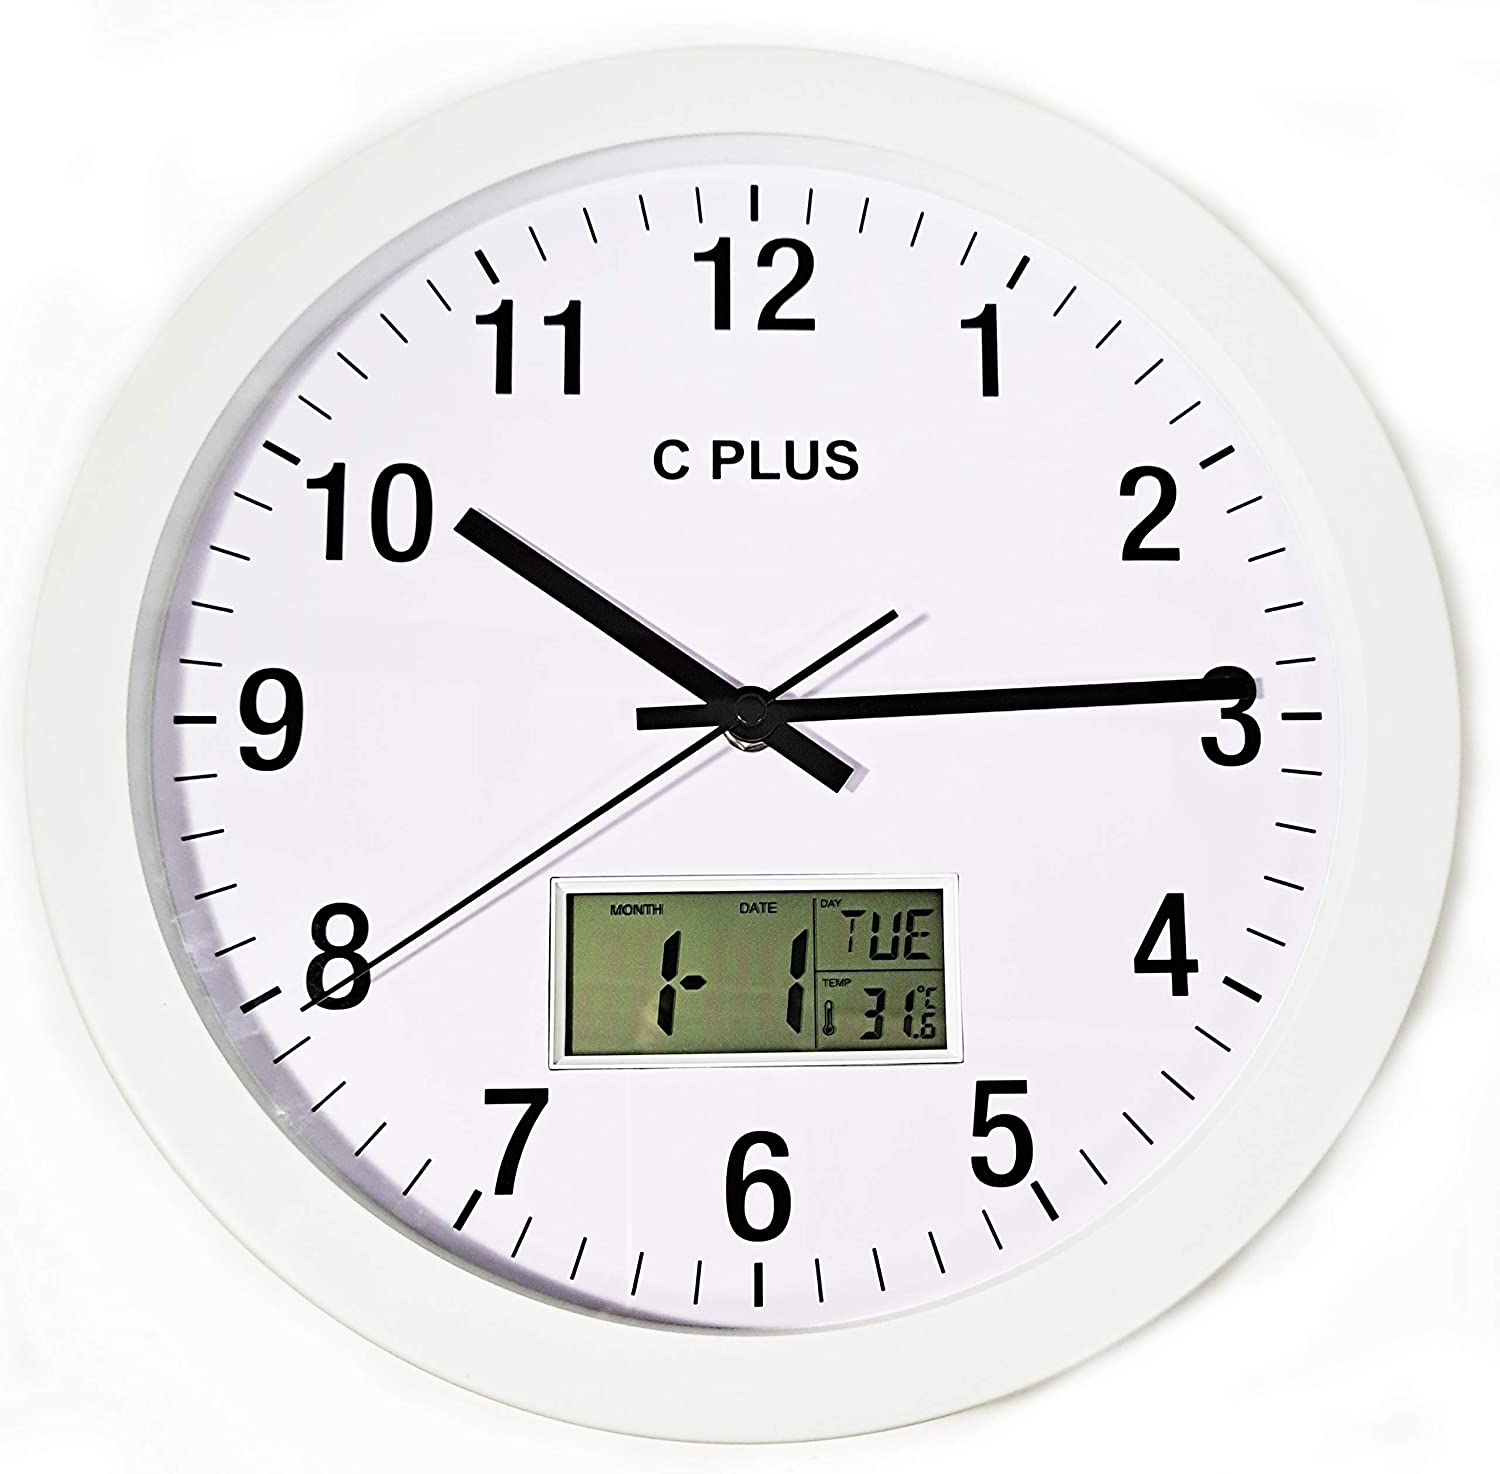 C Plus Wall Clock Non Ticking Silent Battery Operated 12 Inch Quiet Sweep Quartz Movement Modern Home Decor With Temperature Date Time Week Large Numbers Easy To Read Round Room Thermometer